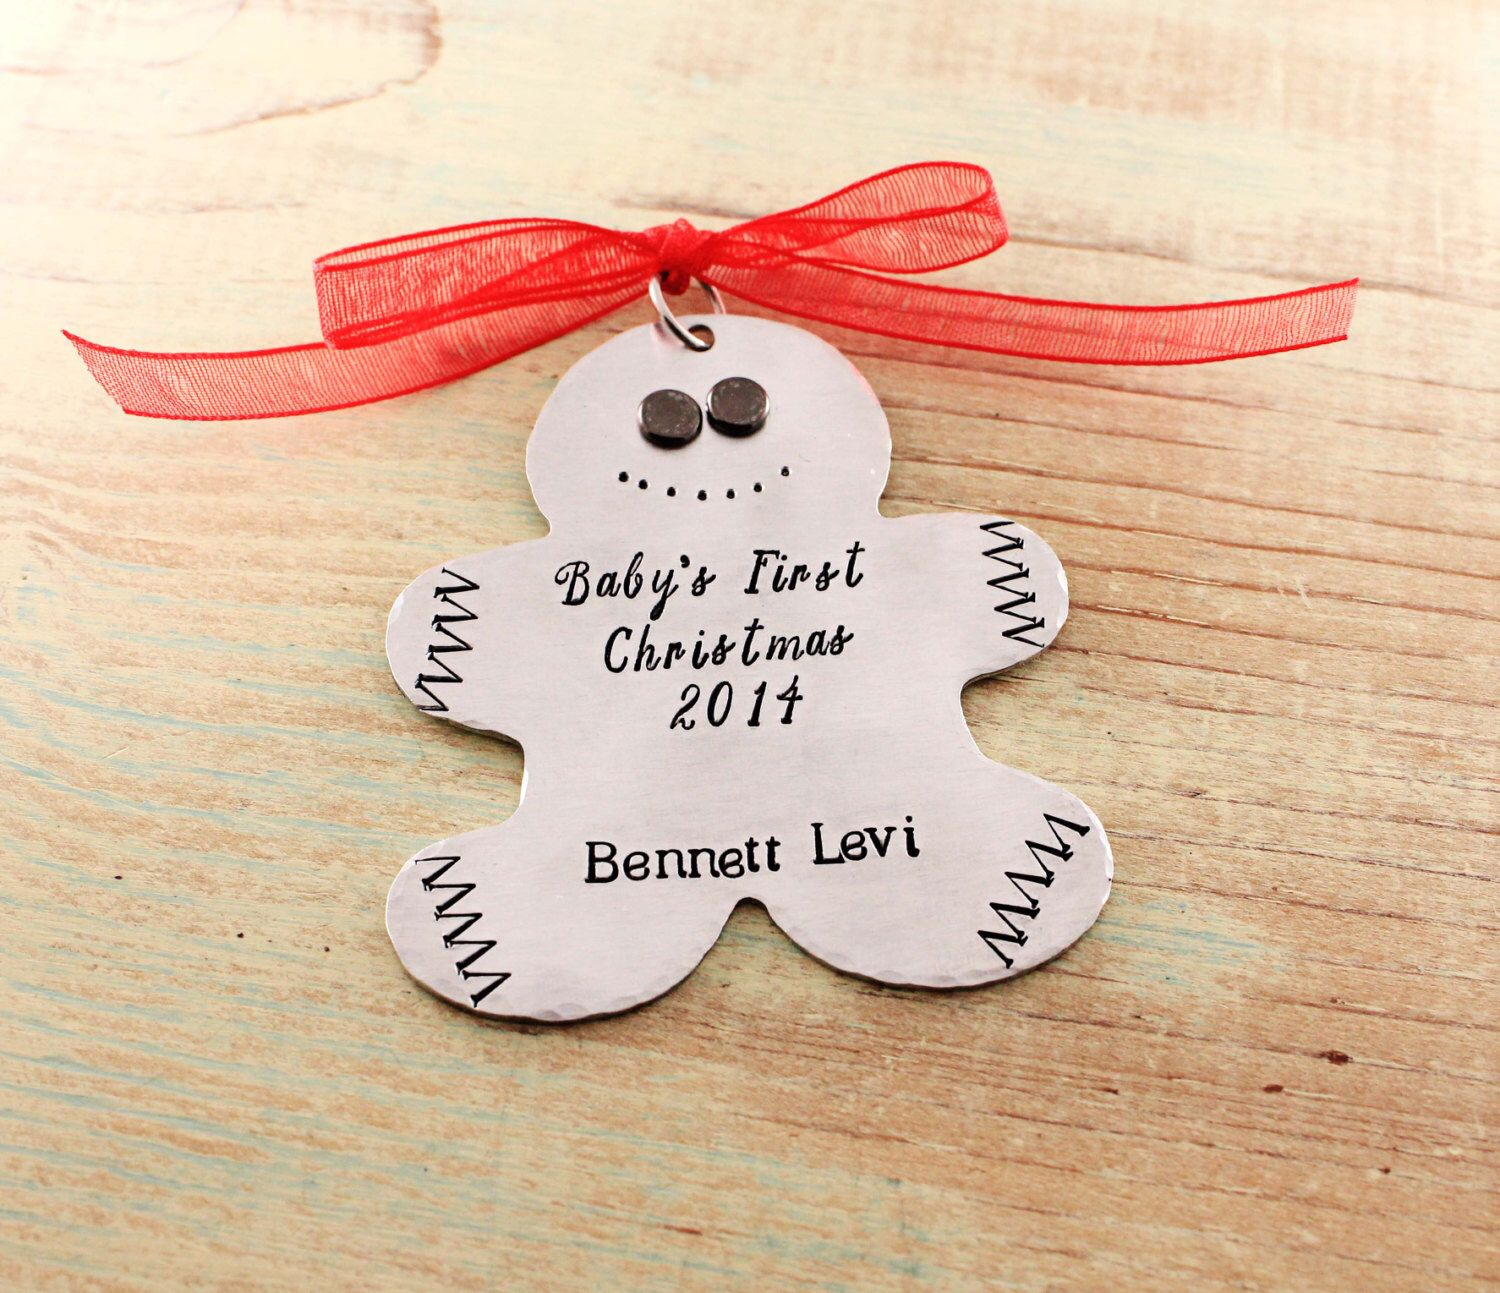 Babies first christmas image by Sonia Taba on Book mark ...